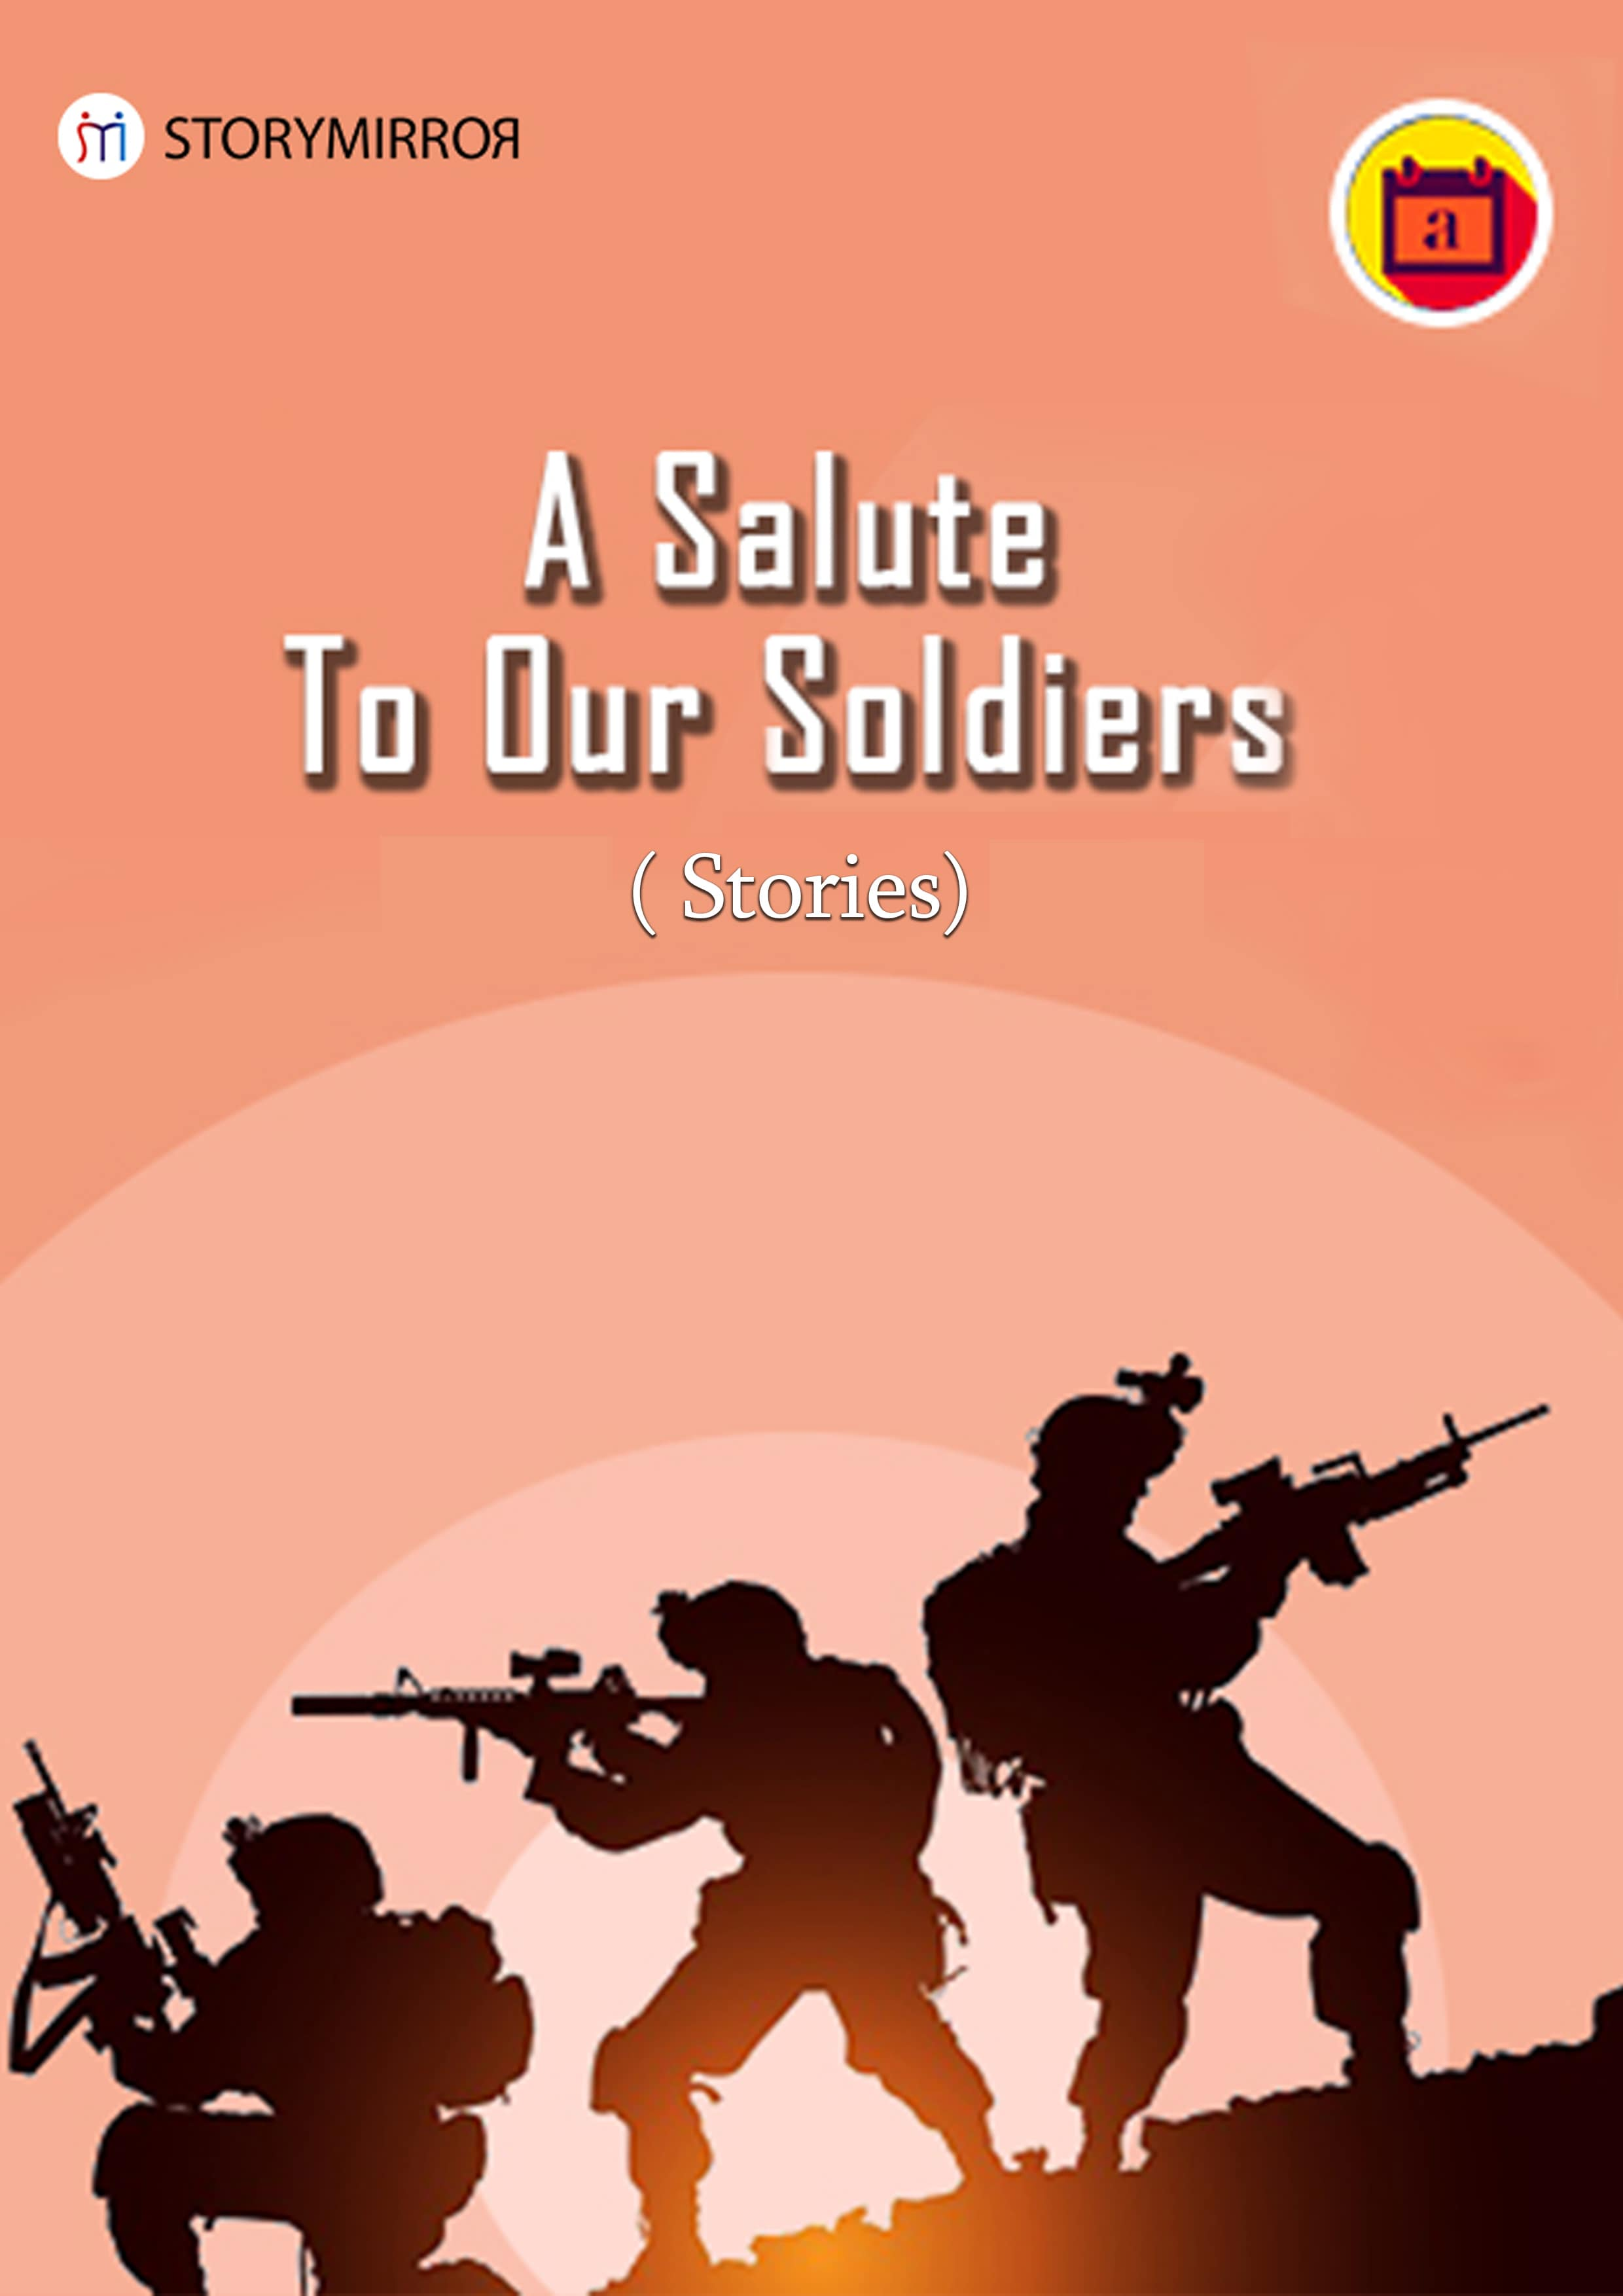 A Salute to Our Soldiers - Stories